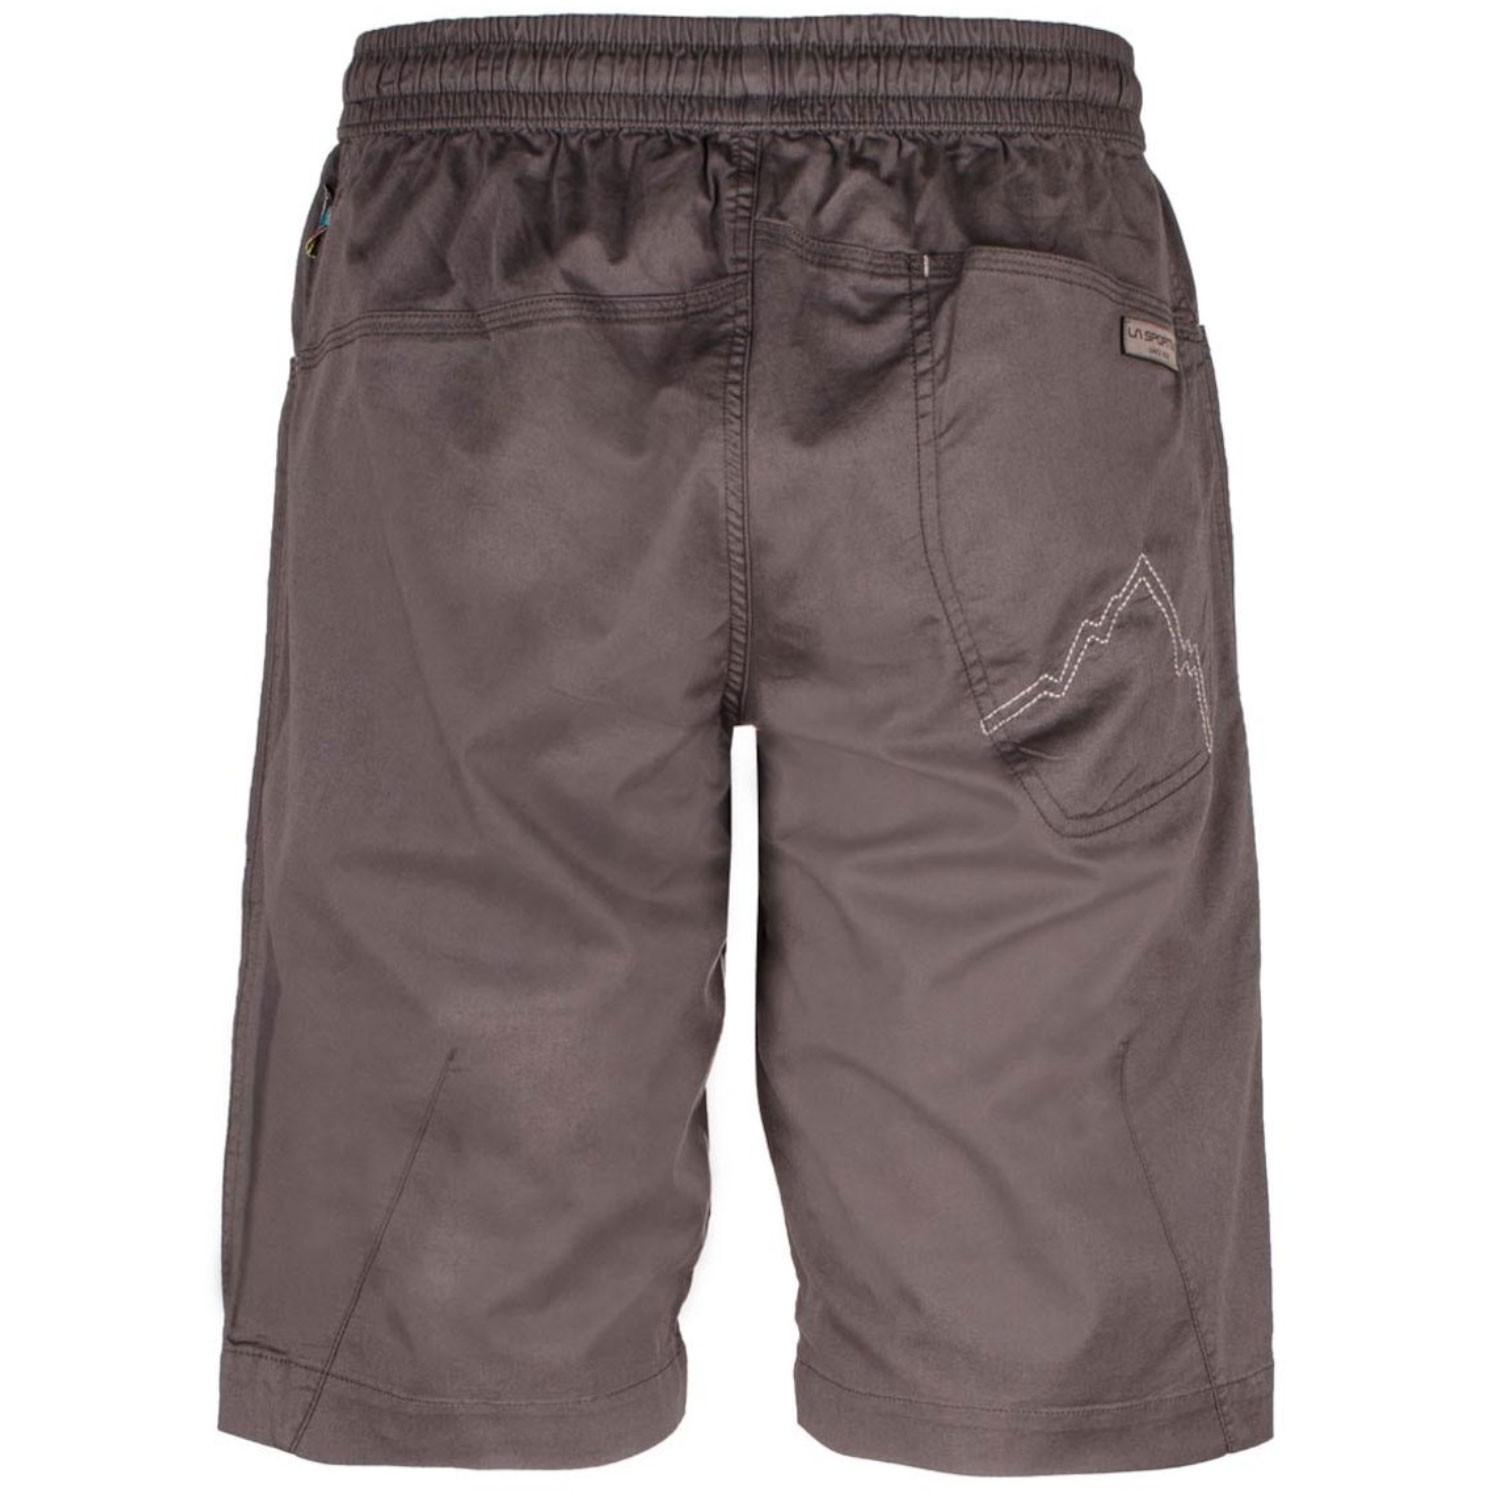 La Sportiva Levanto Men's Shorts - Carbon - back